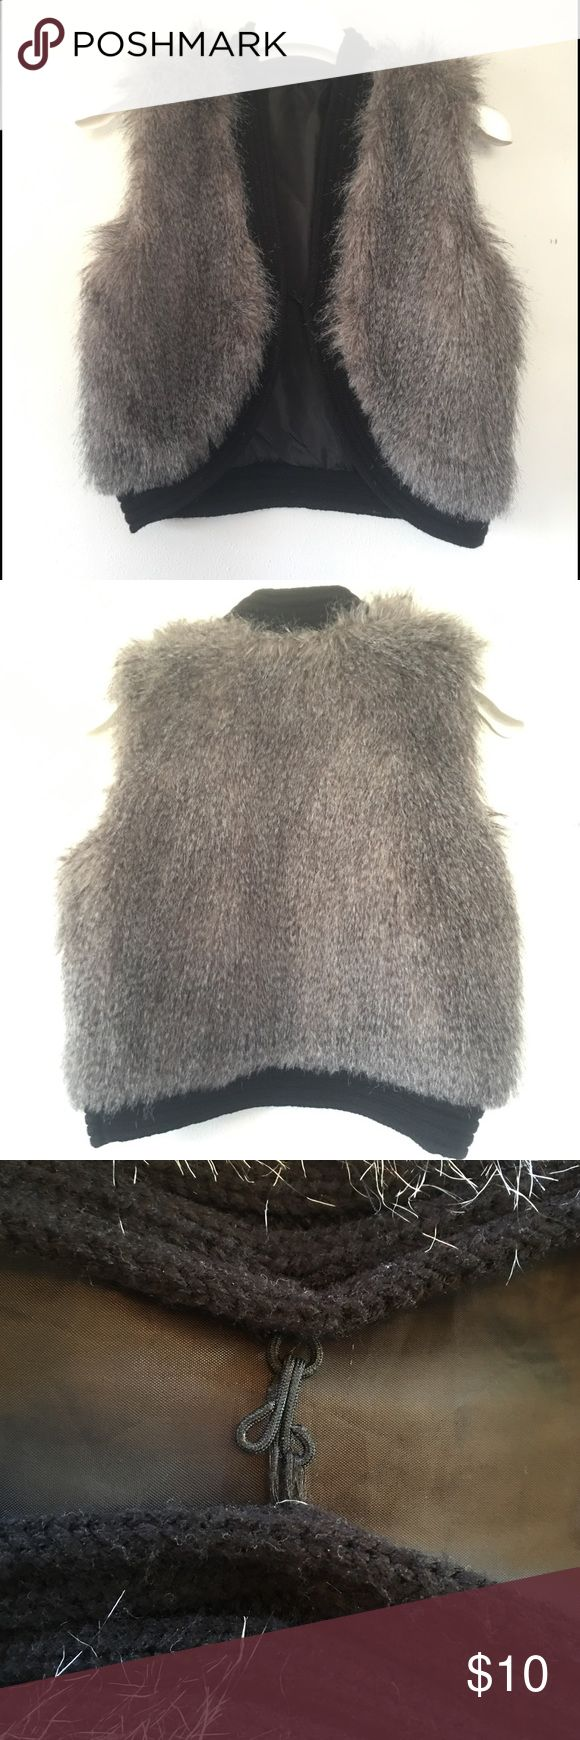 💚BOGO💚 Faux Fur Vest Woman's Vegan Style Hipster Beautiful piece that will compliment any wardrobe. Has small clasp in the center. SMOKE FREE & PET FREE HOME 🙂 Jackets & Coats Vests